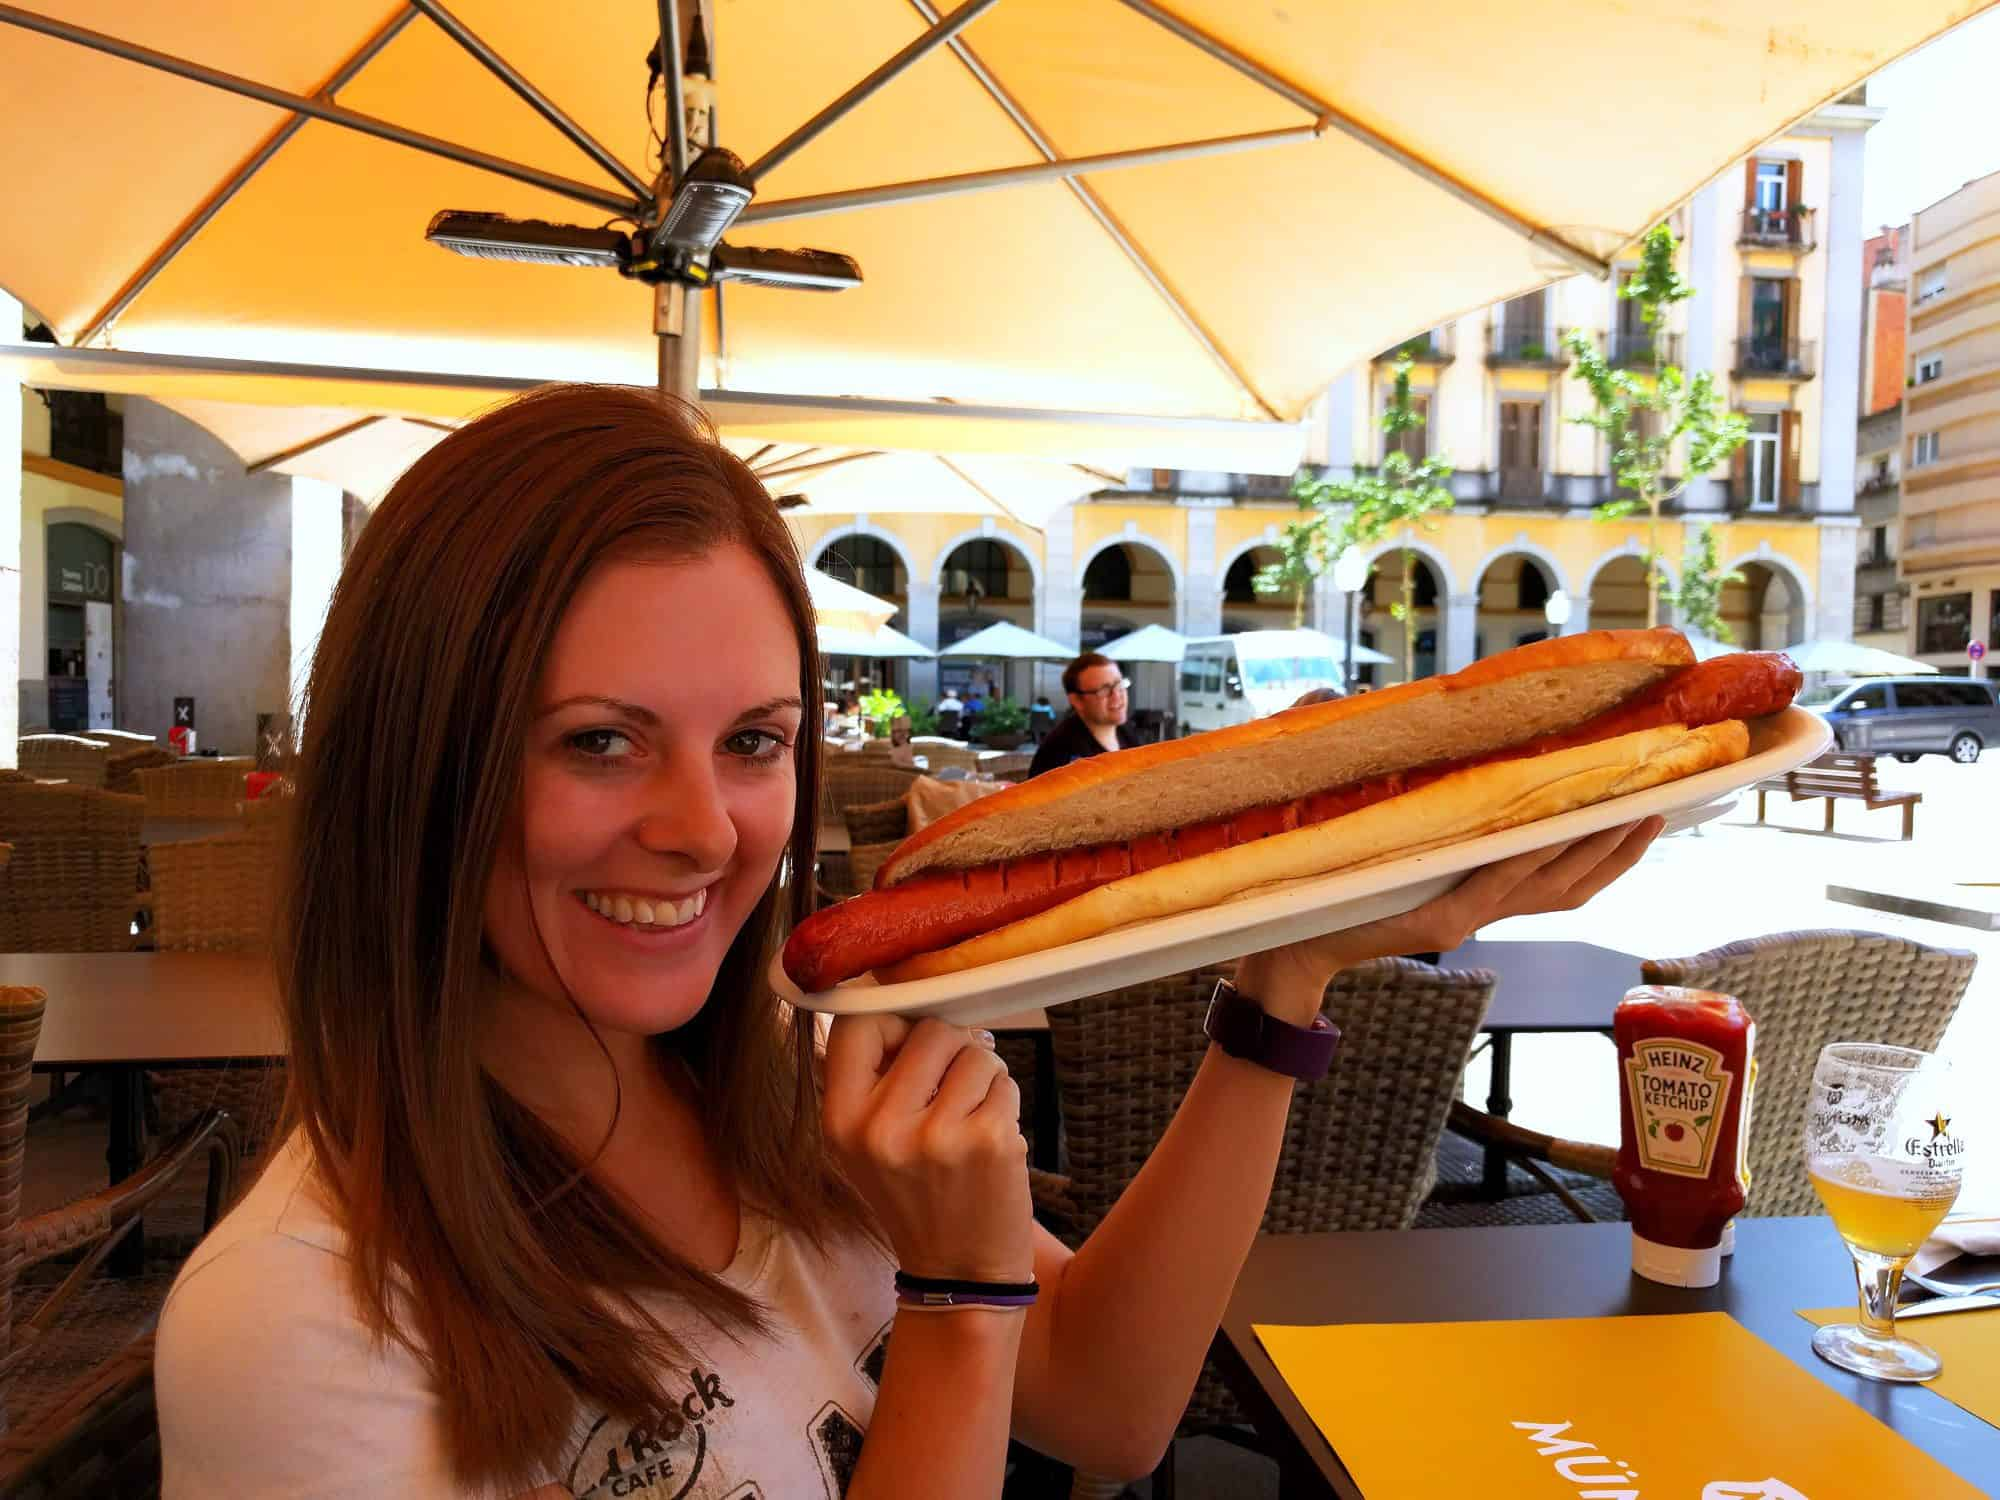 I'm all about challenges. But not eating this hot dog, because I think it ended up giving me food poisoning.